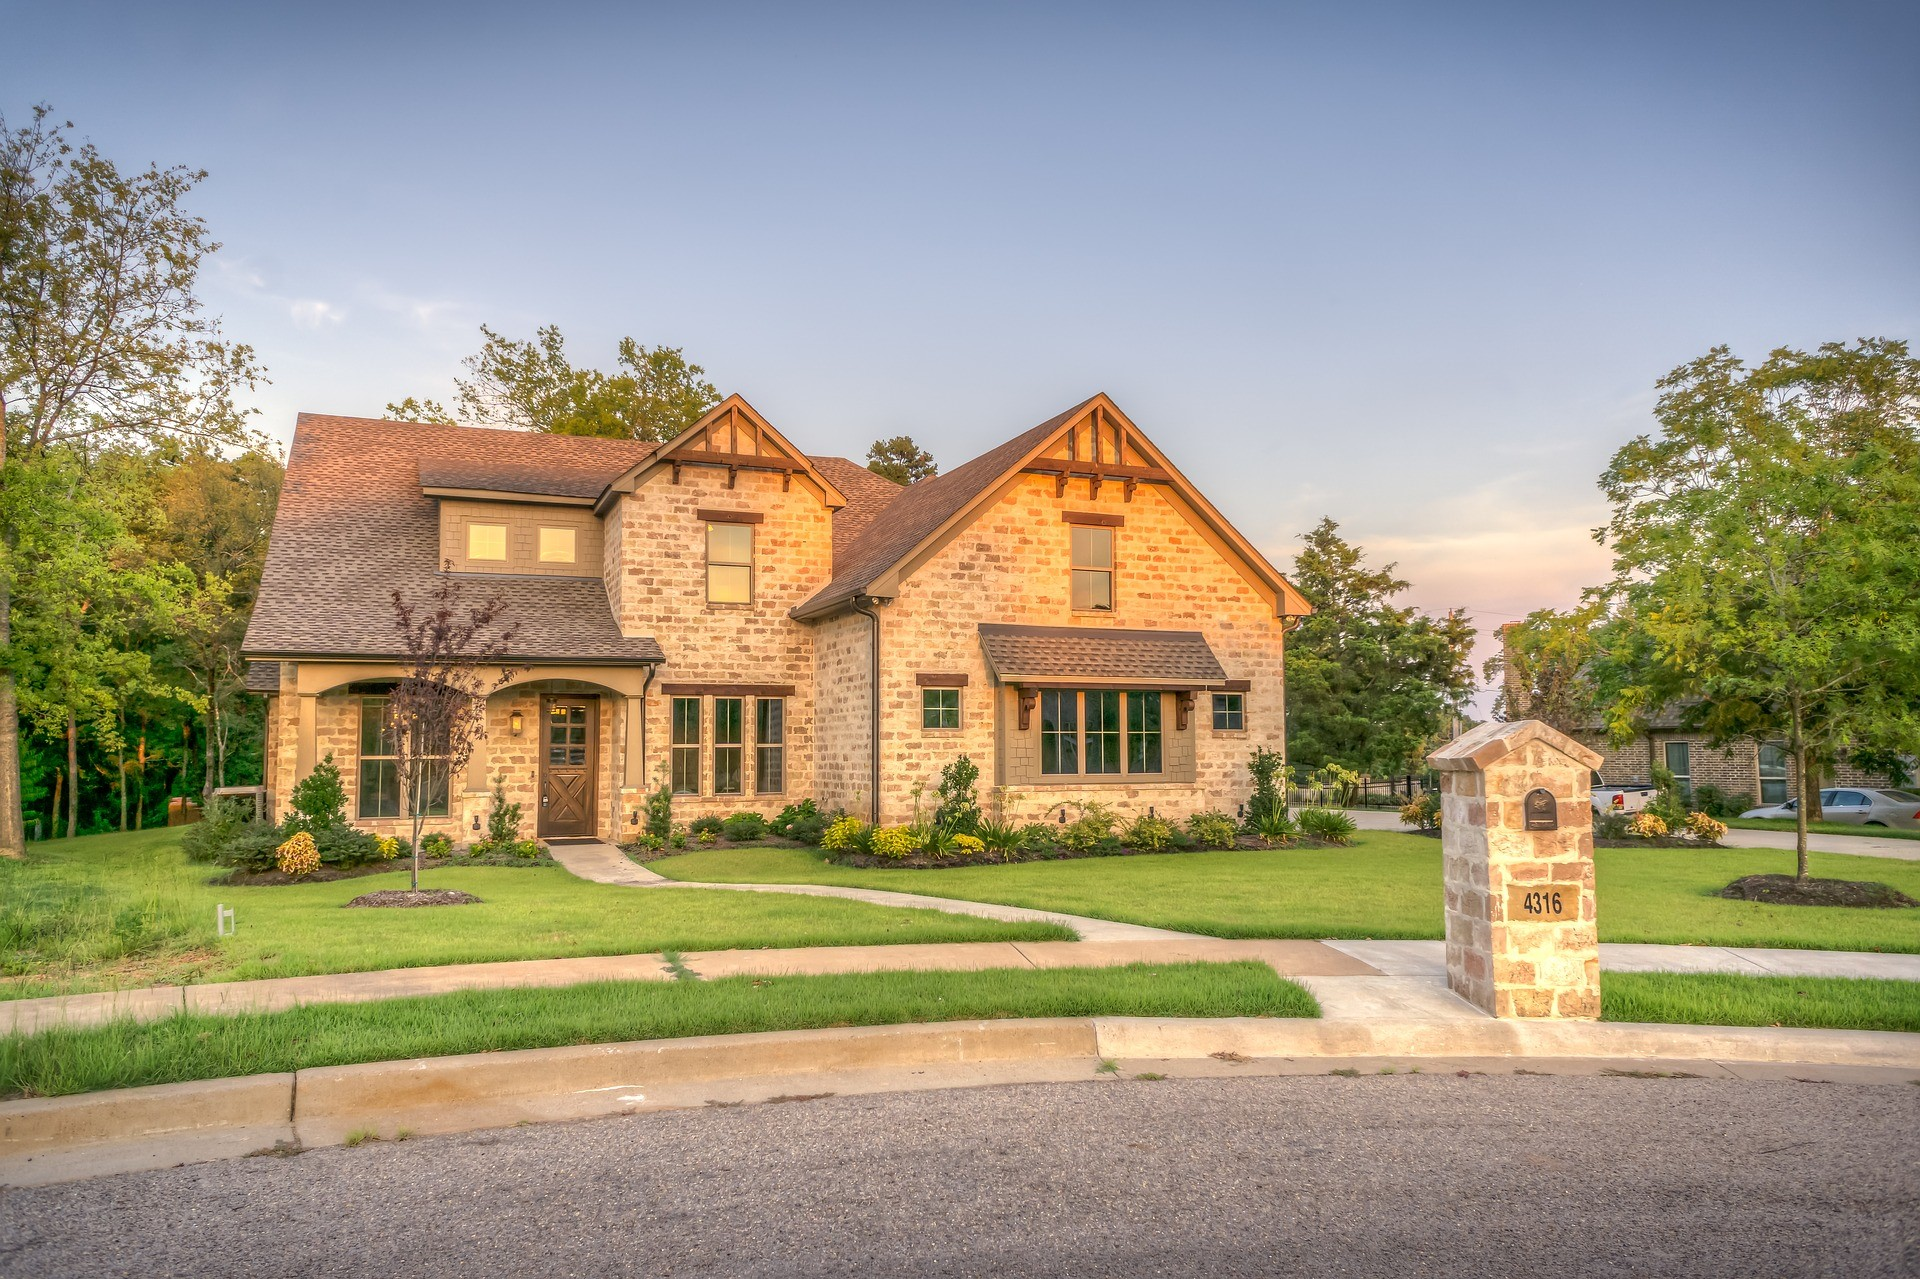 Want To Raise Your Home's Value? | Invest In Curb Appeal